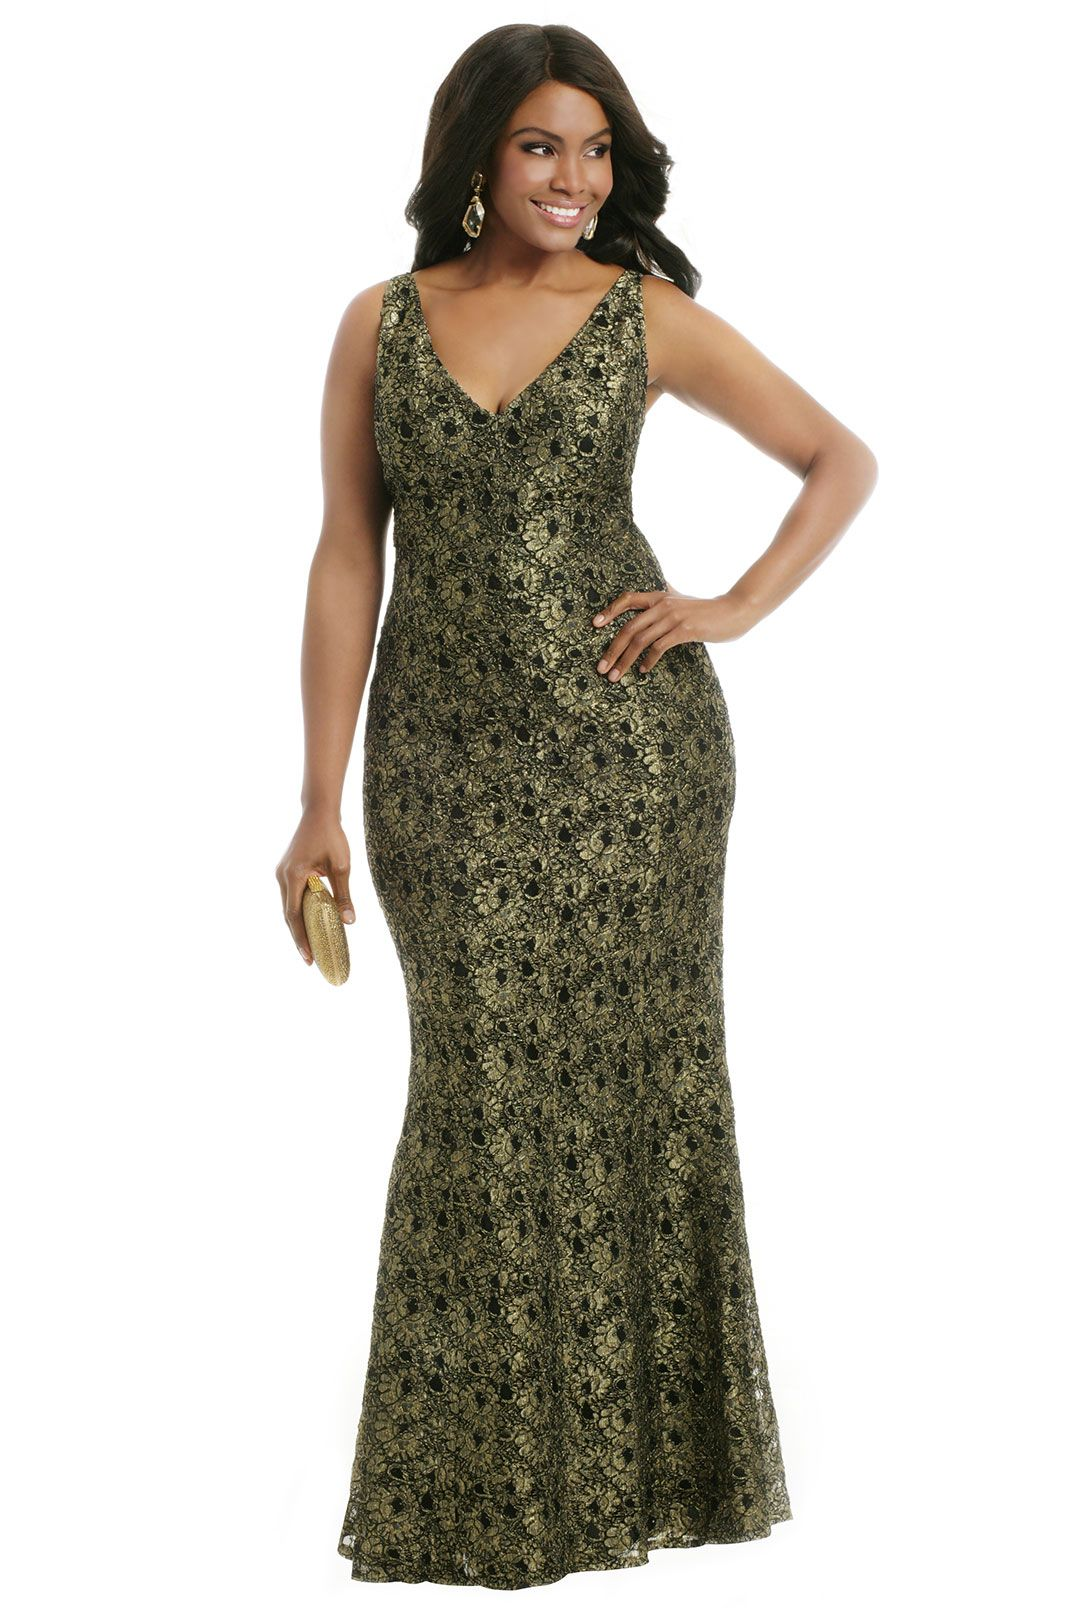 5 beautiful plus size evening gowns dresses for summer - plus